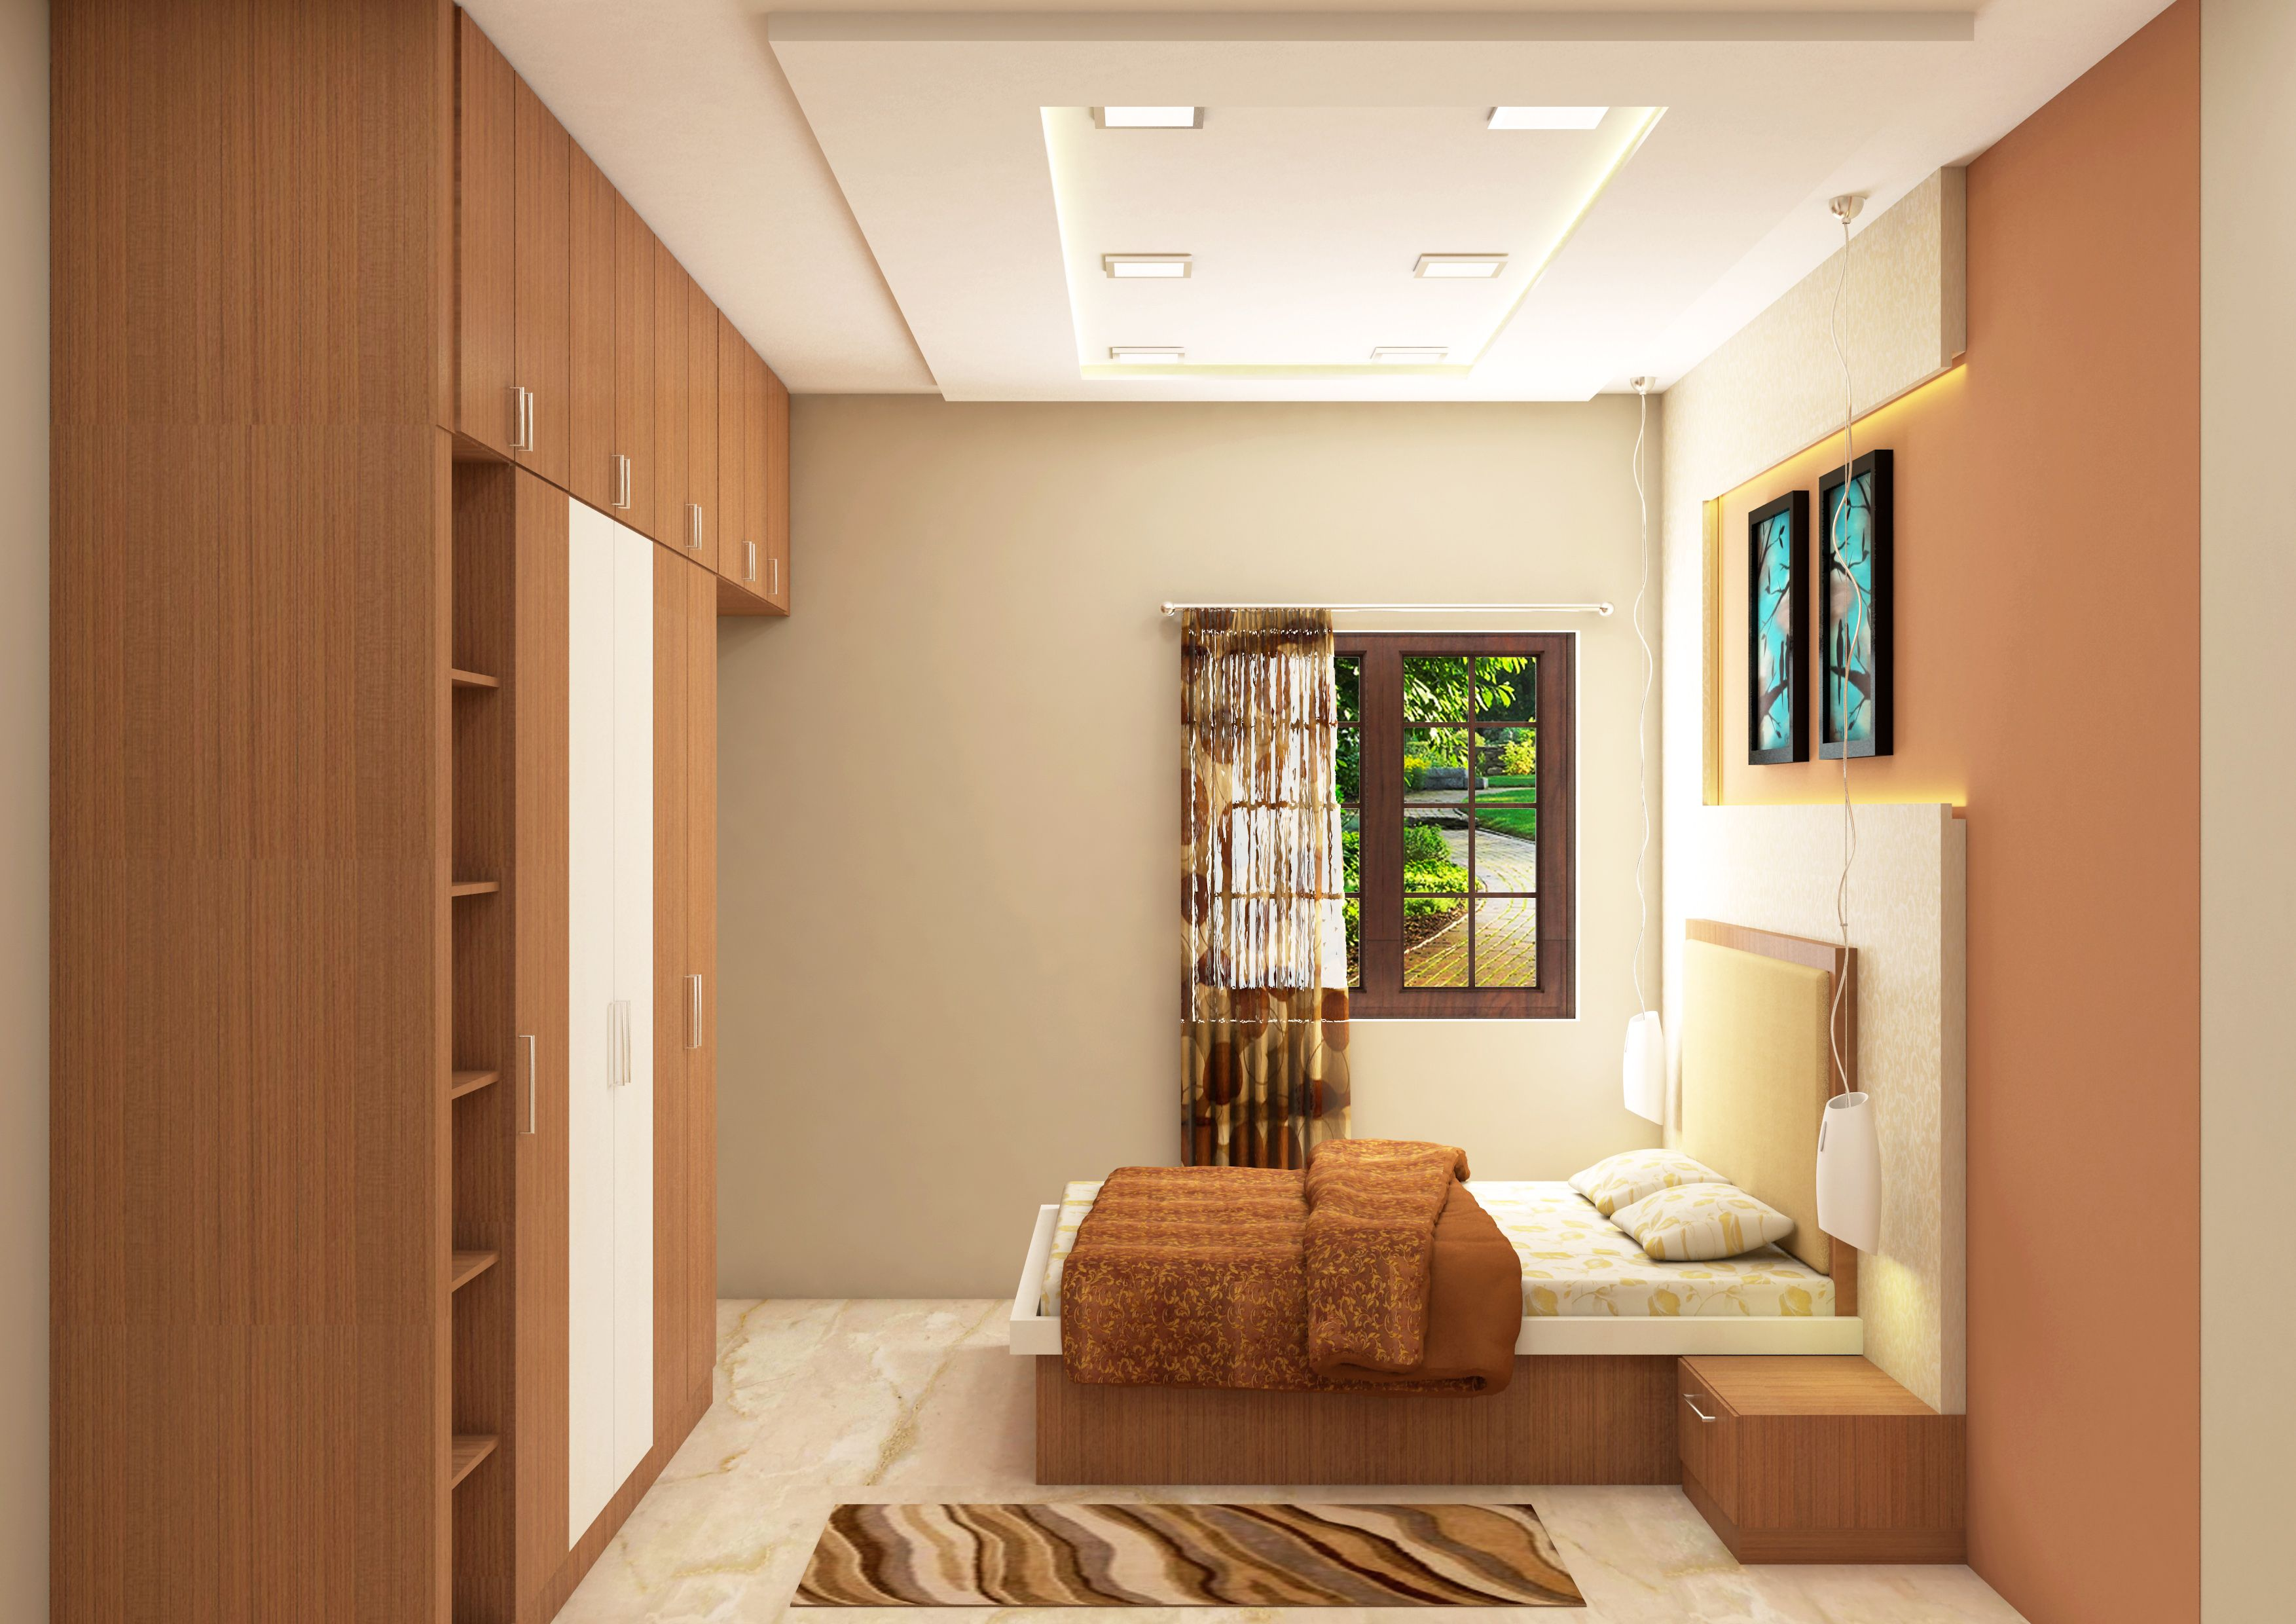 . Personalize the modular bedroom with innovative bedroom furniture